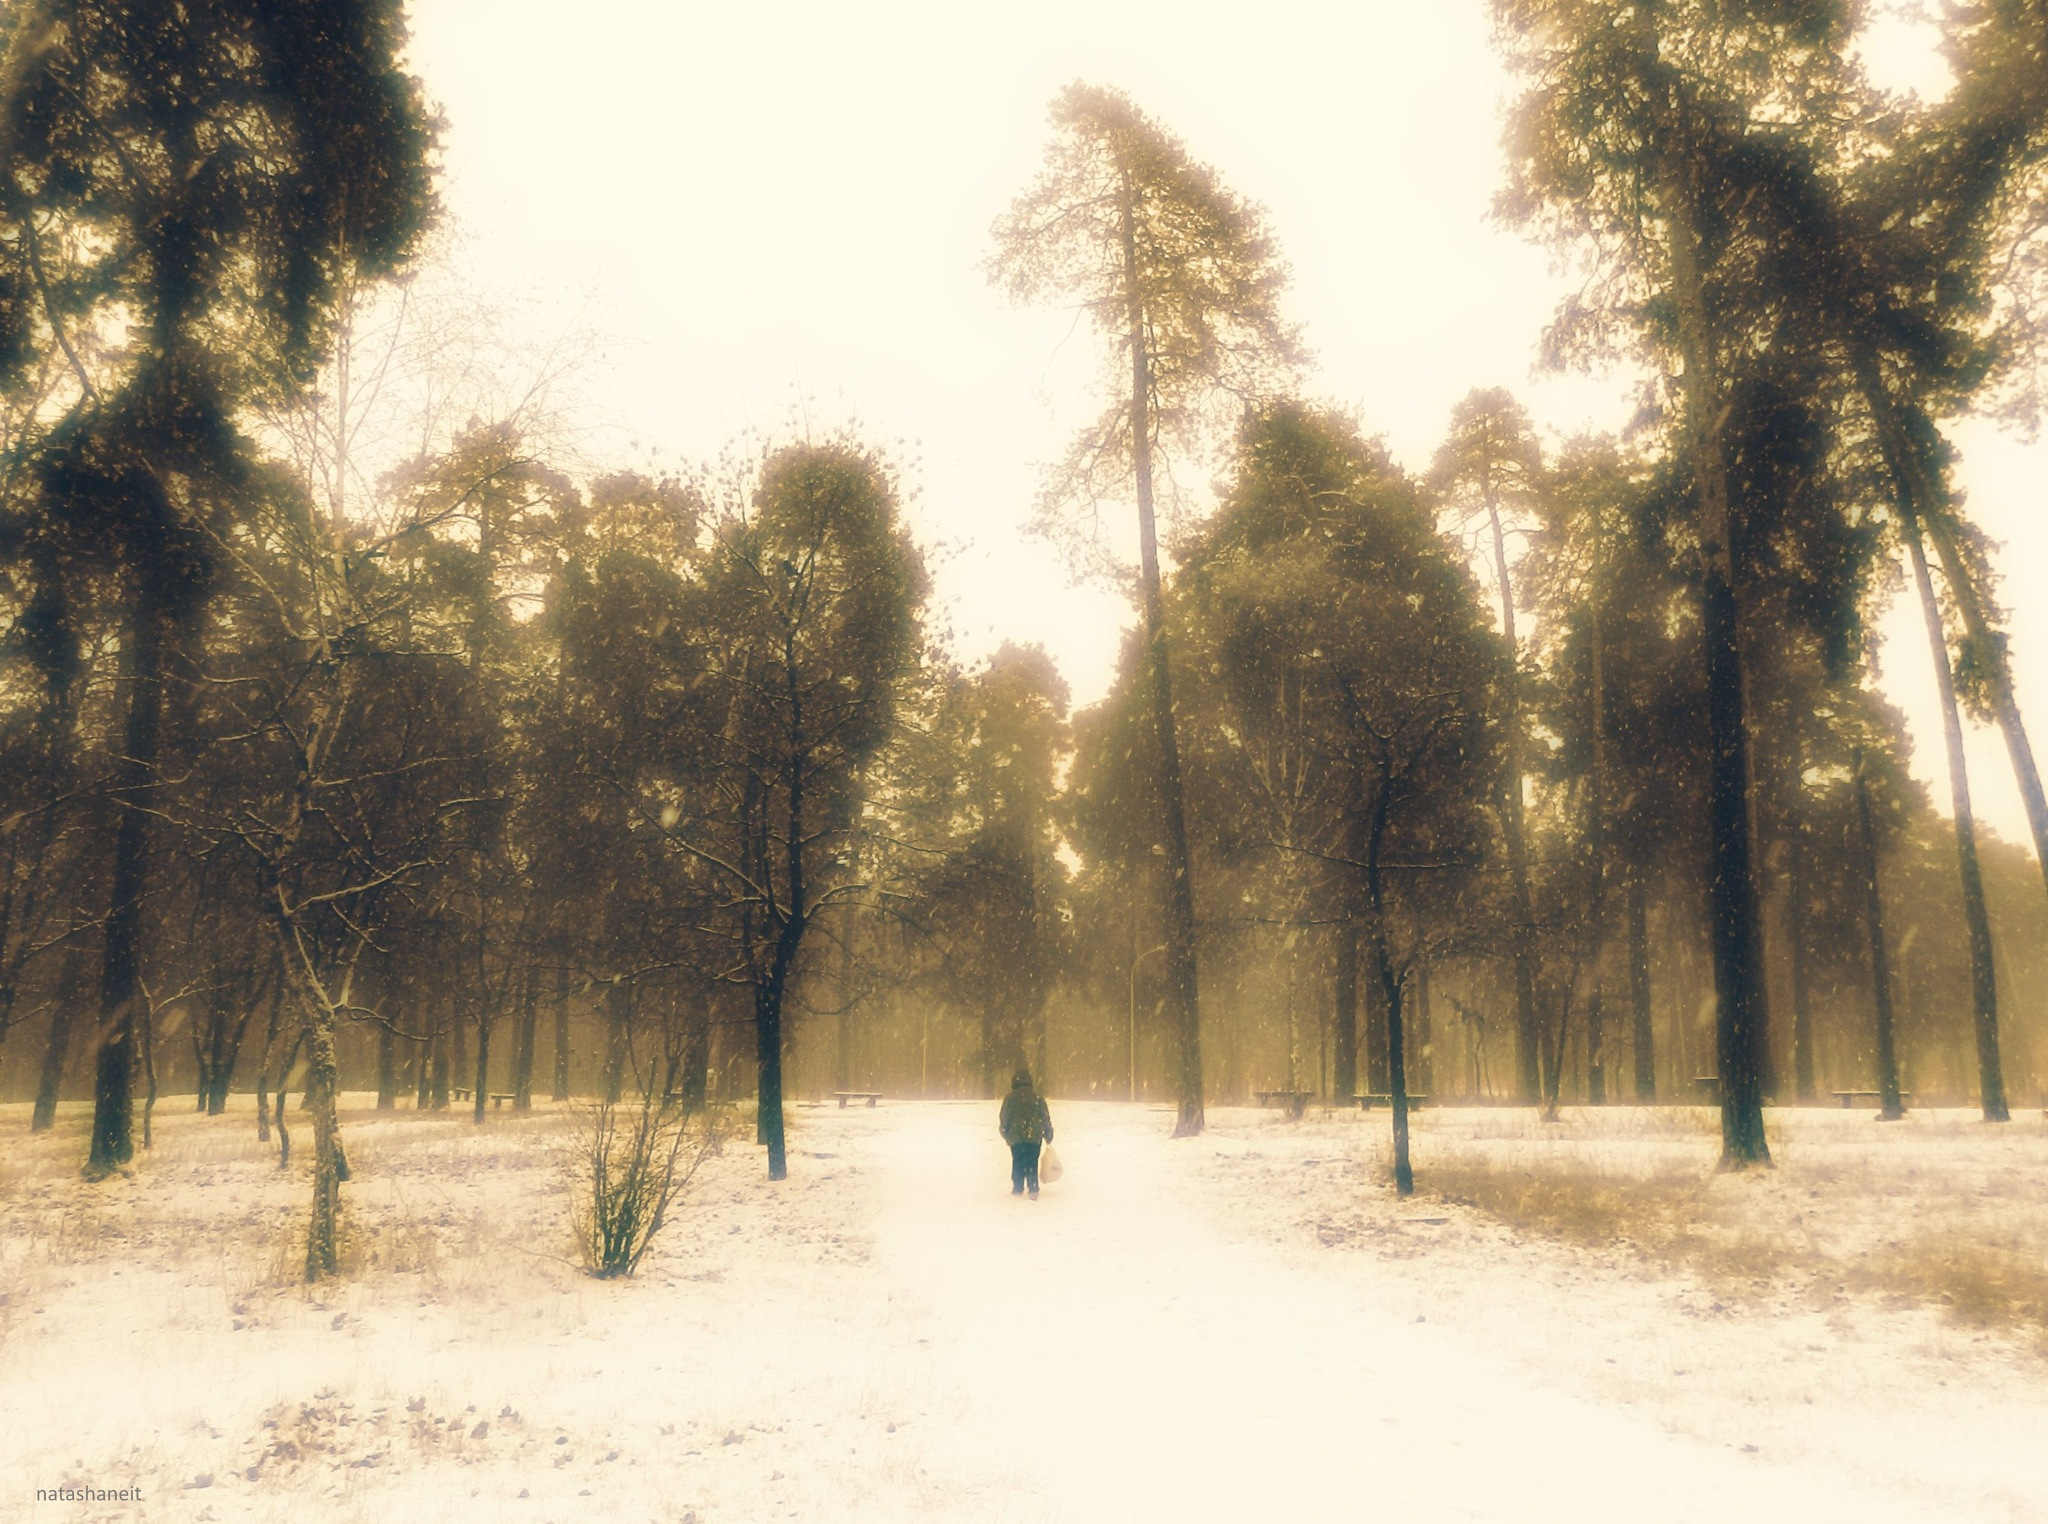 Snowy day in the forest park by natashaneit